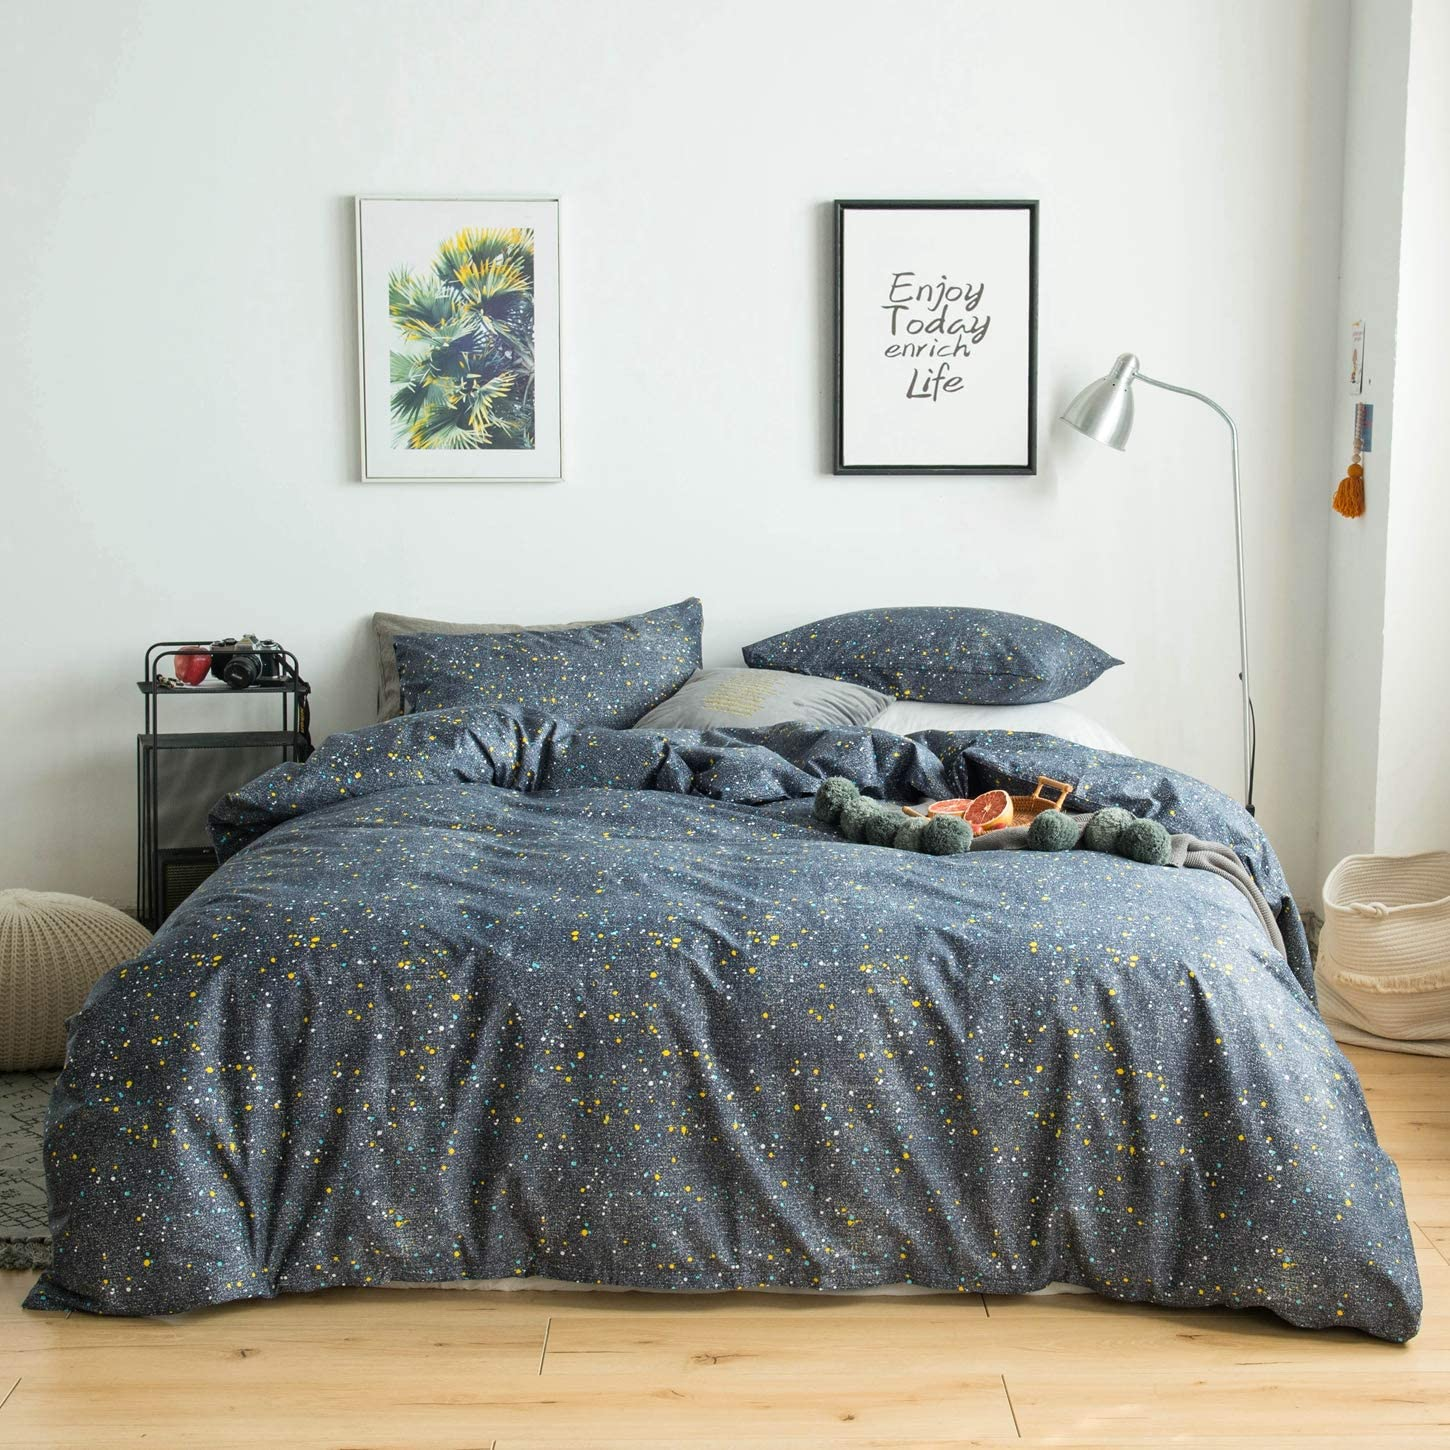 YuHeGuoJi 3 Pieces Duvet Cover Set 100% Cotton Gray King Size Colorful Dotted Bedding Set 1 Galaxy Space Print Duvet Cover with Zipper Ties 2 Pillowcases Luxury Quality Soft Breathable Comfortable